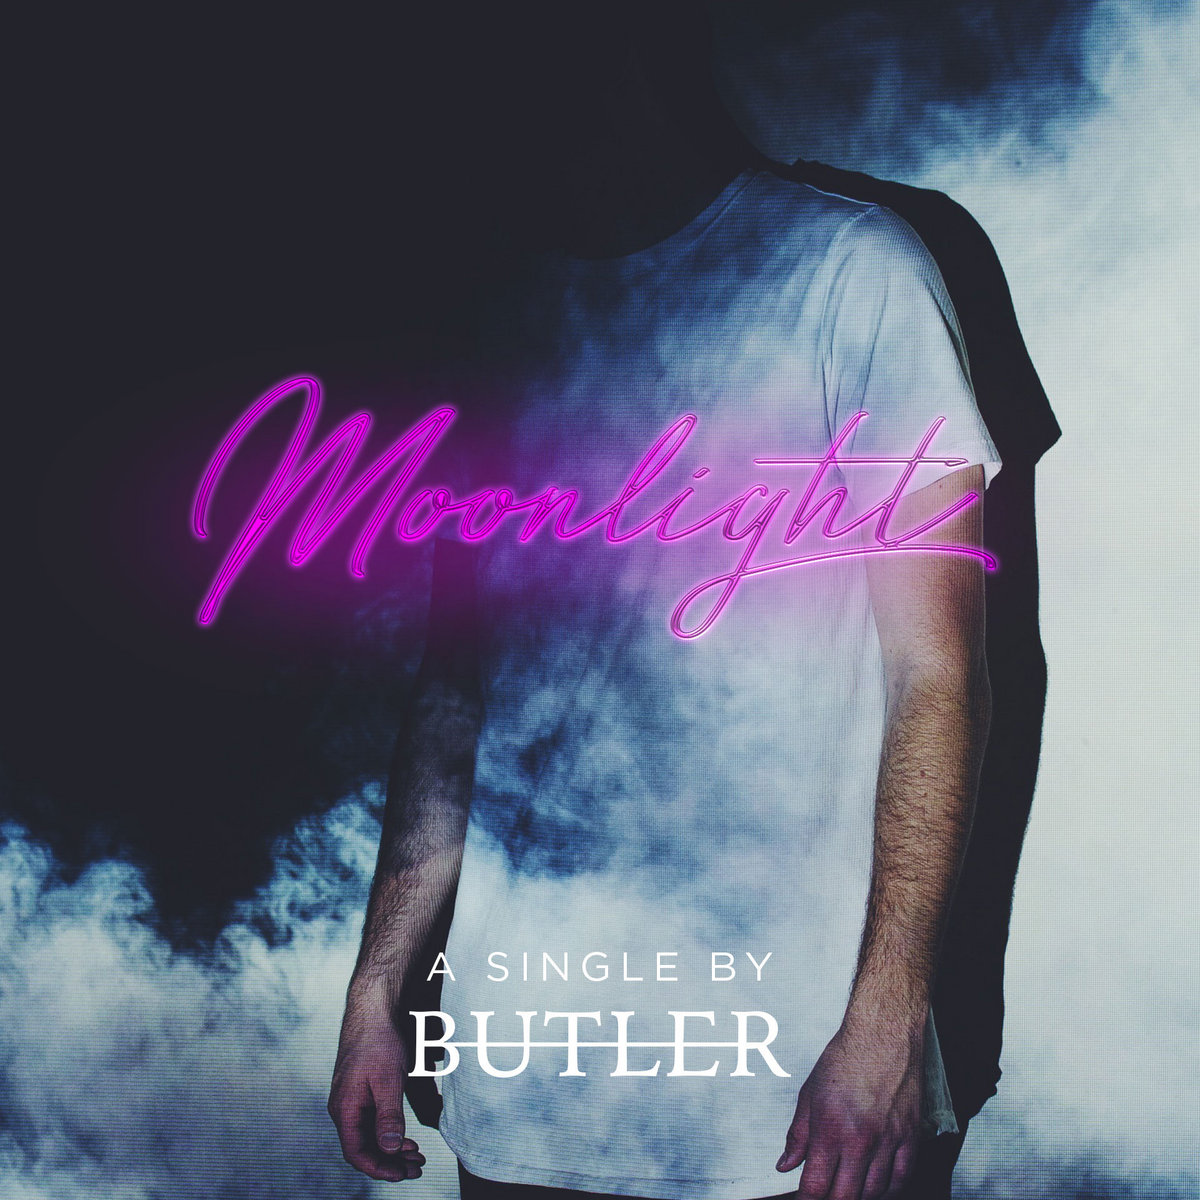 Moonlight by Butler